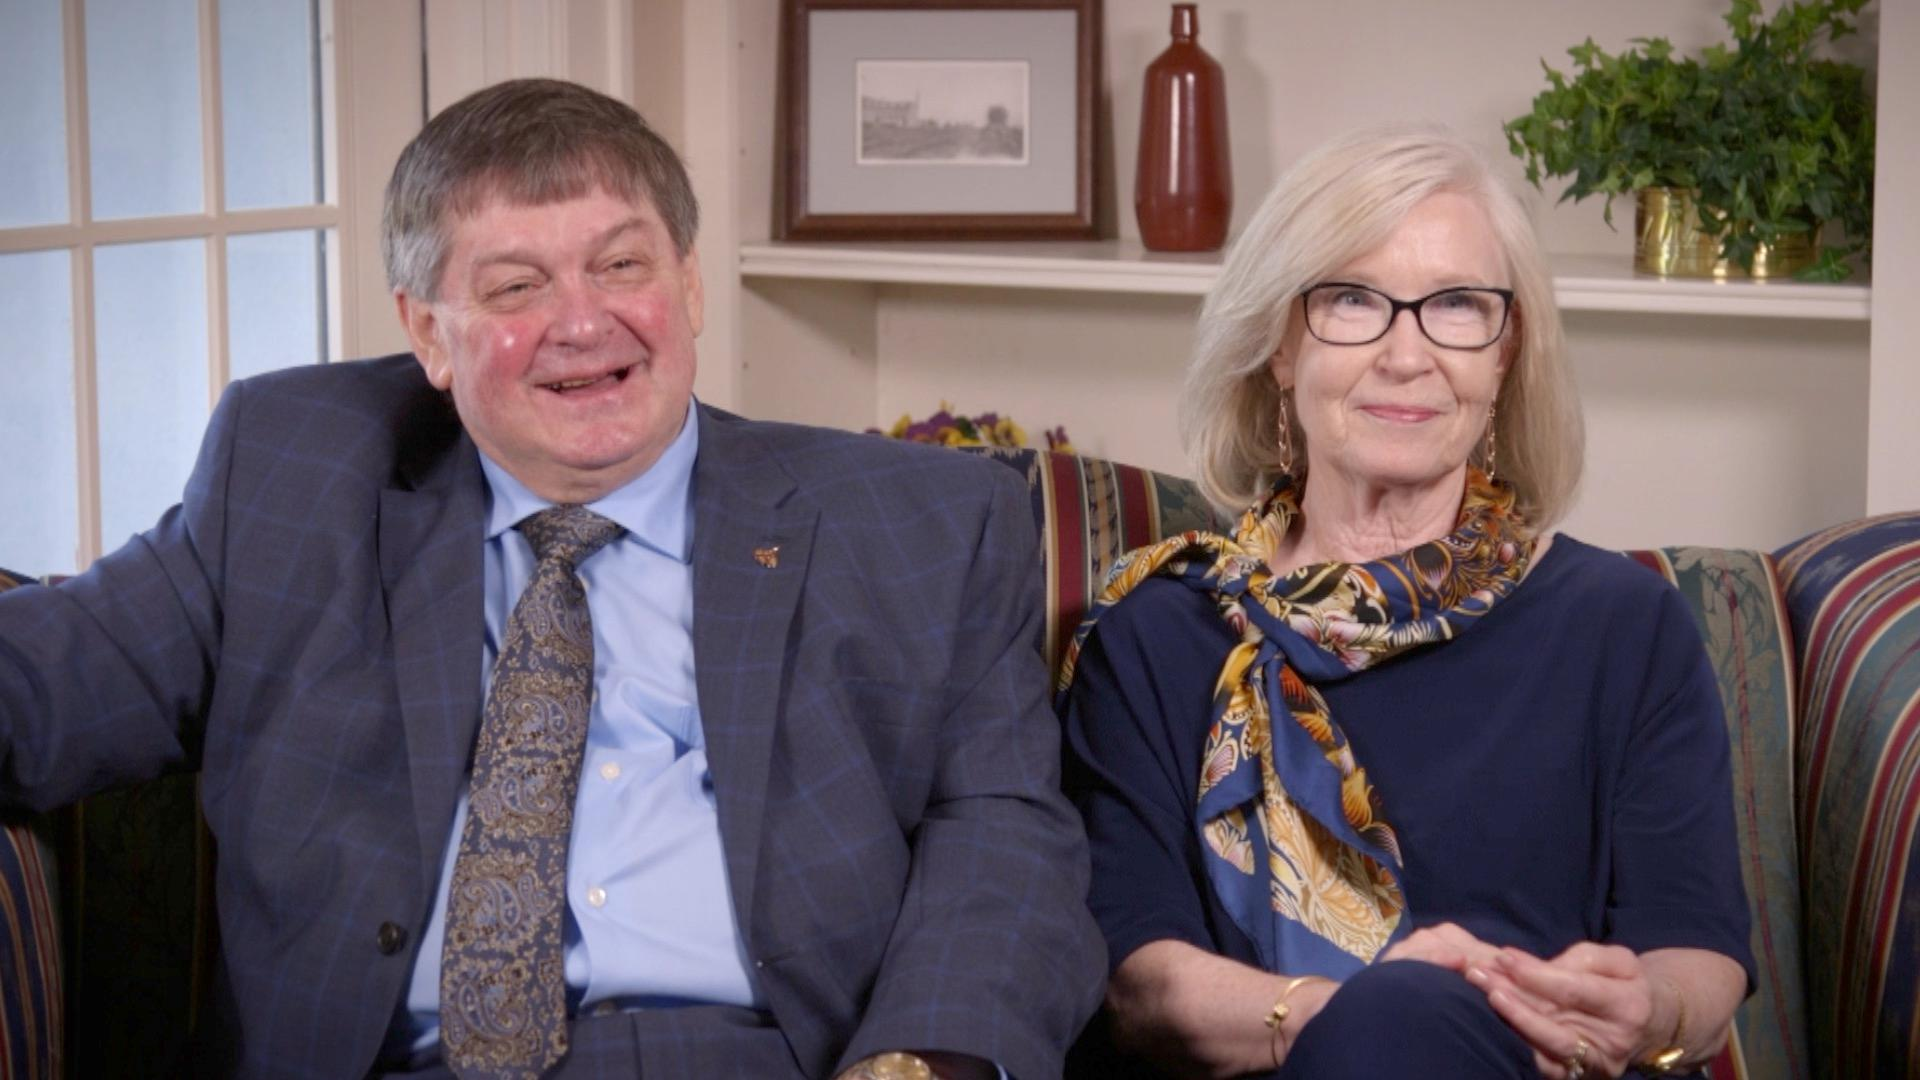 Glenda Chatham and Robert G. Clarke sitting on a couch looking at camera.